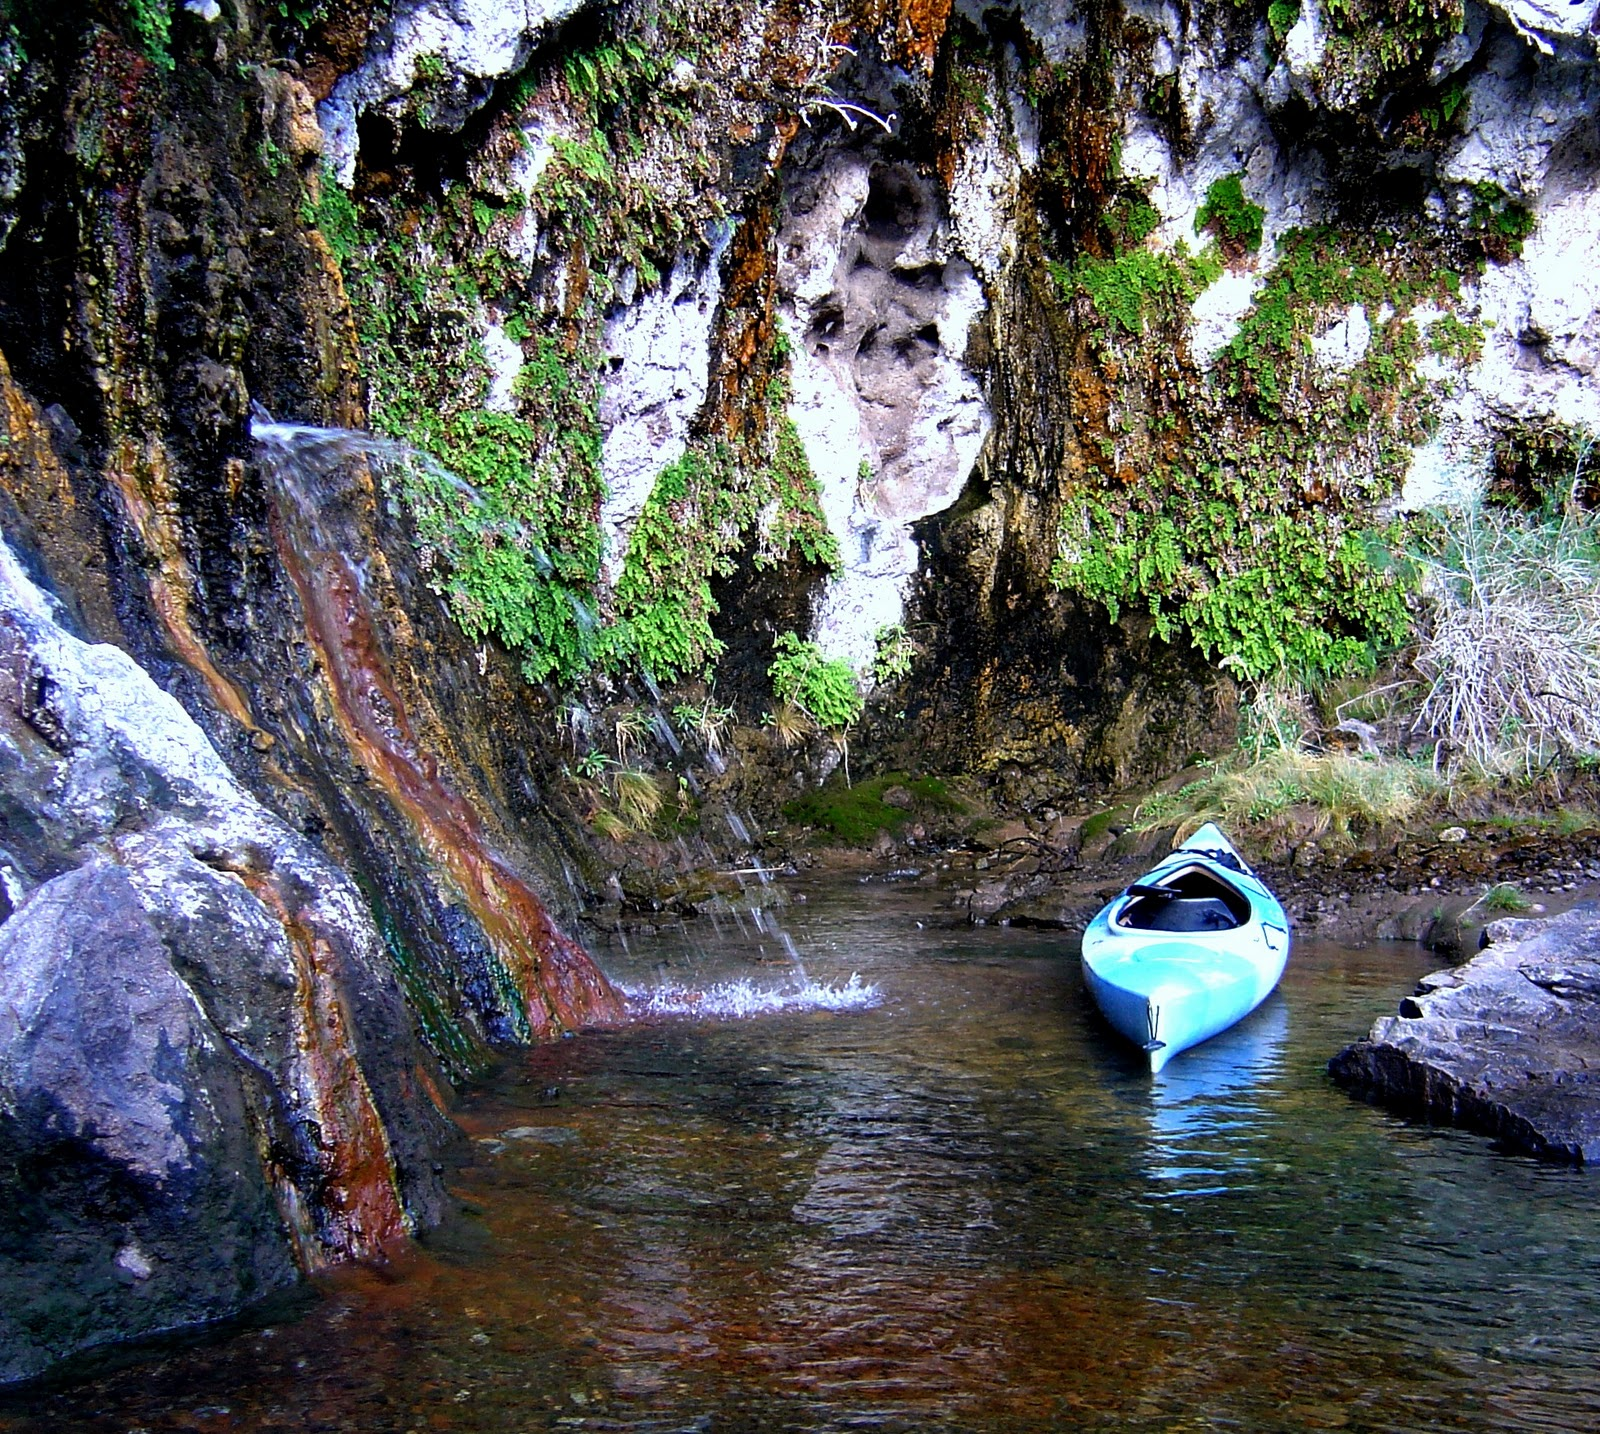 Trailsnet: Water Trail In The Black Canyon Of The Colorado